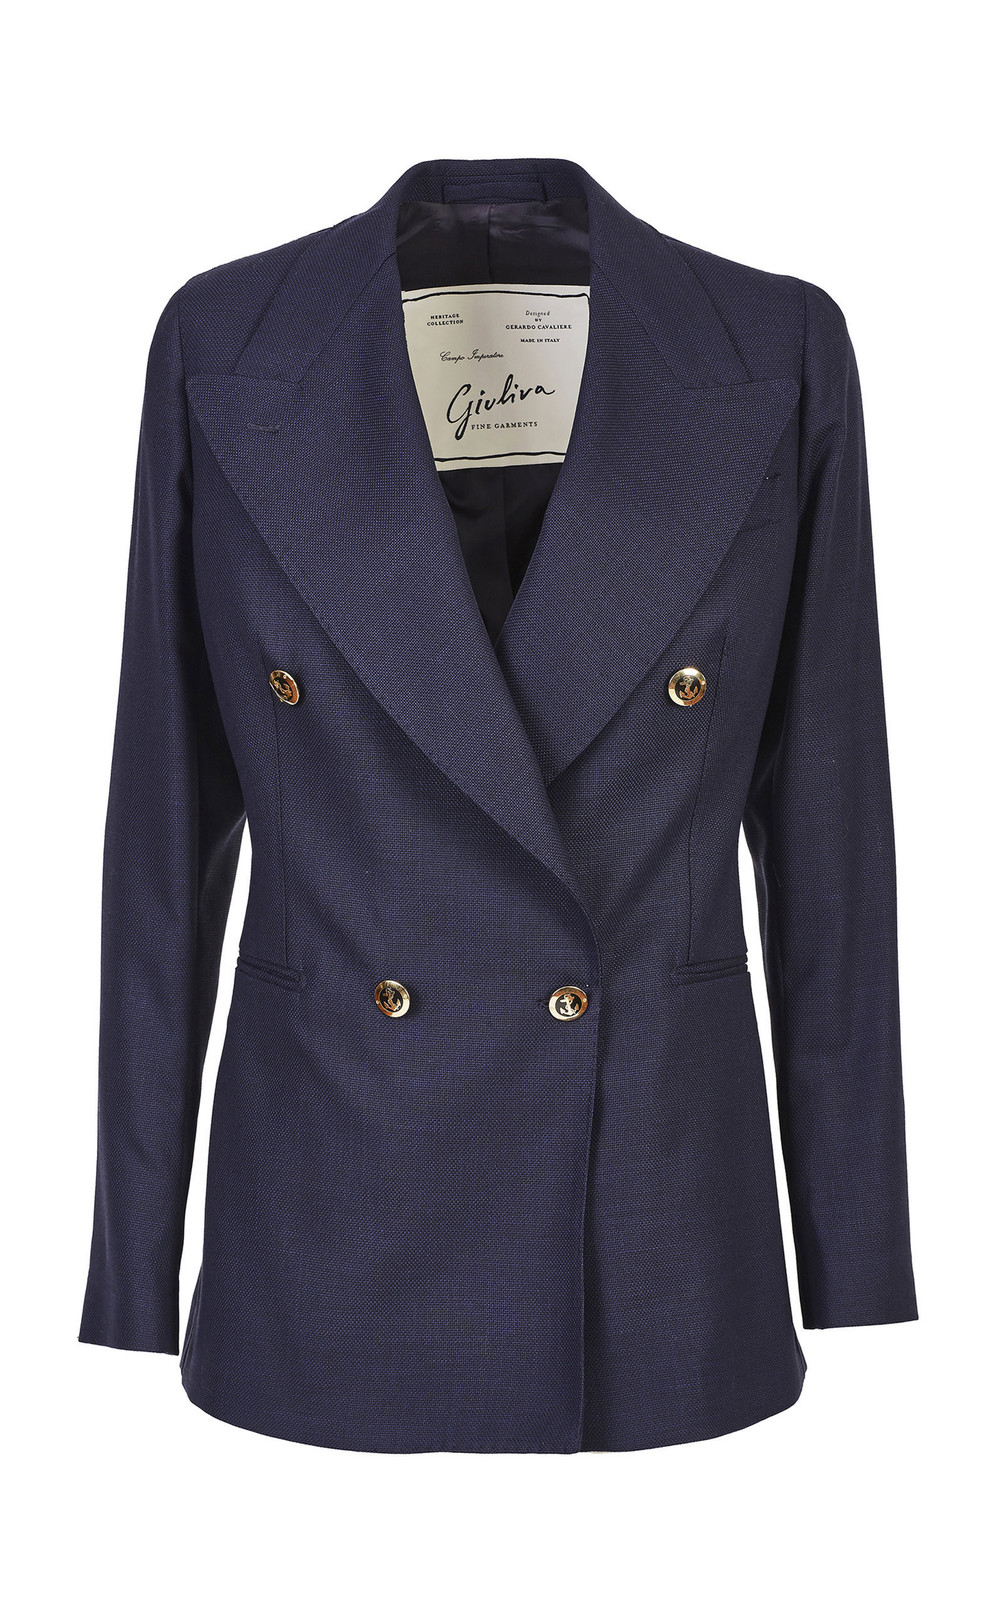 Giuliva Heritage Collection Double-Breasted Wool Blazer in blue